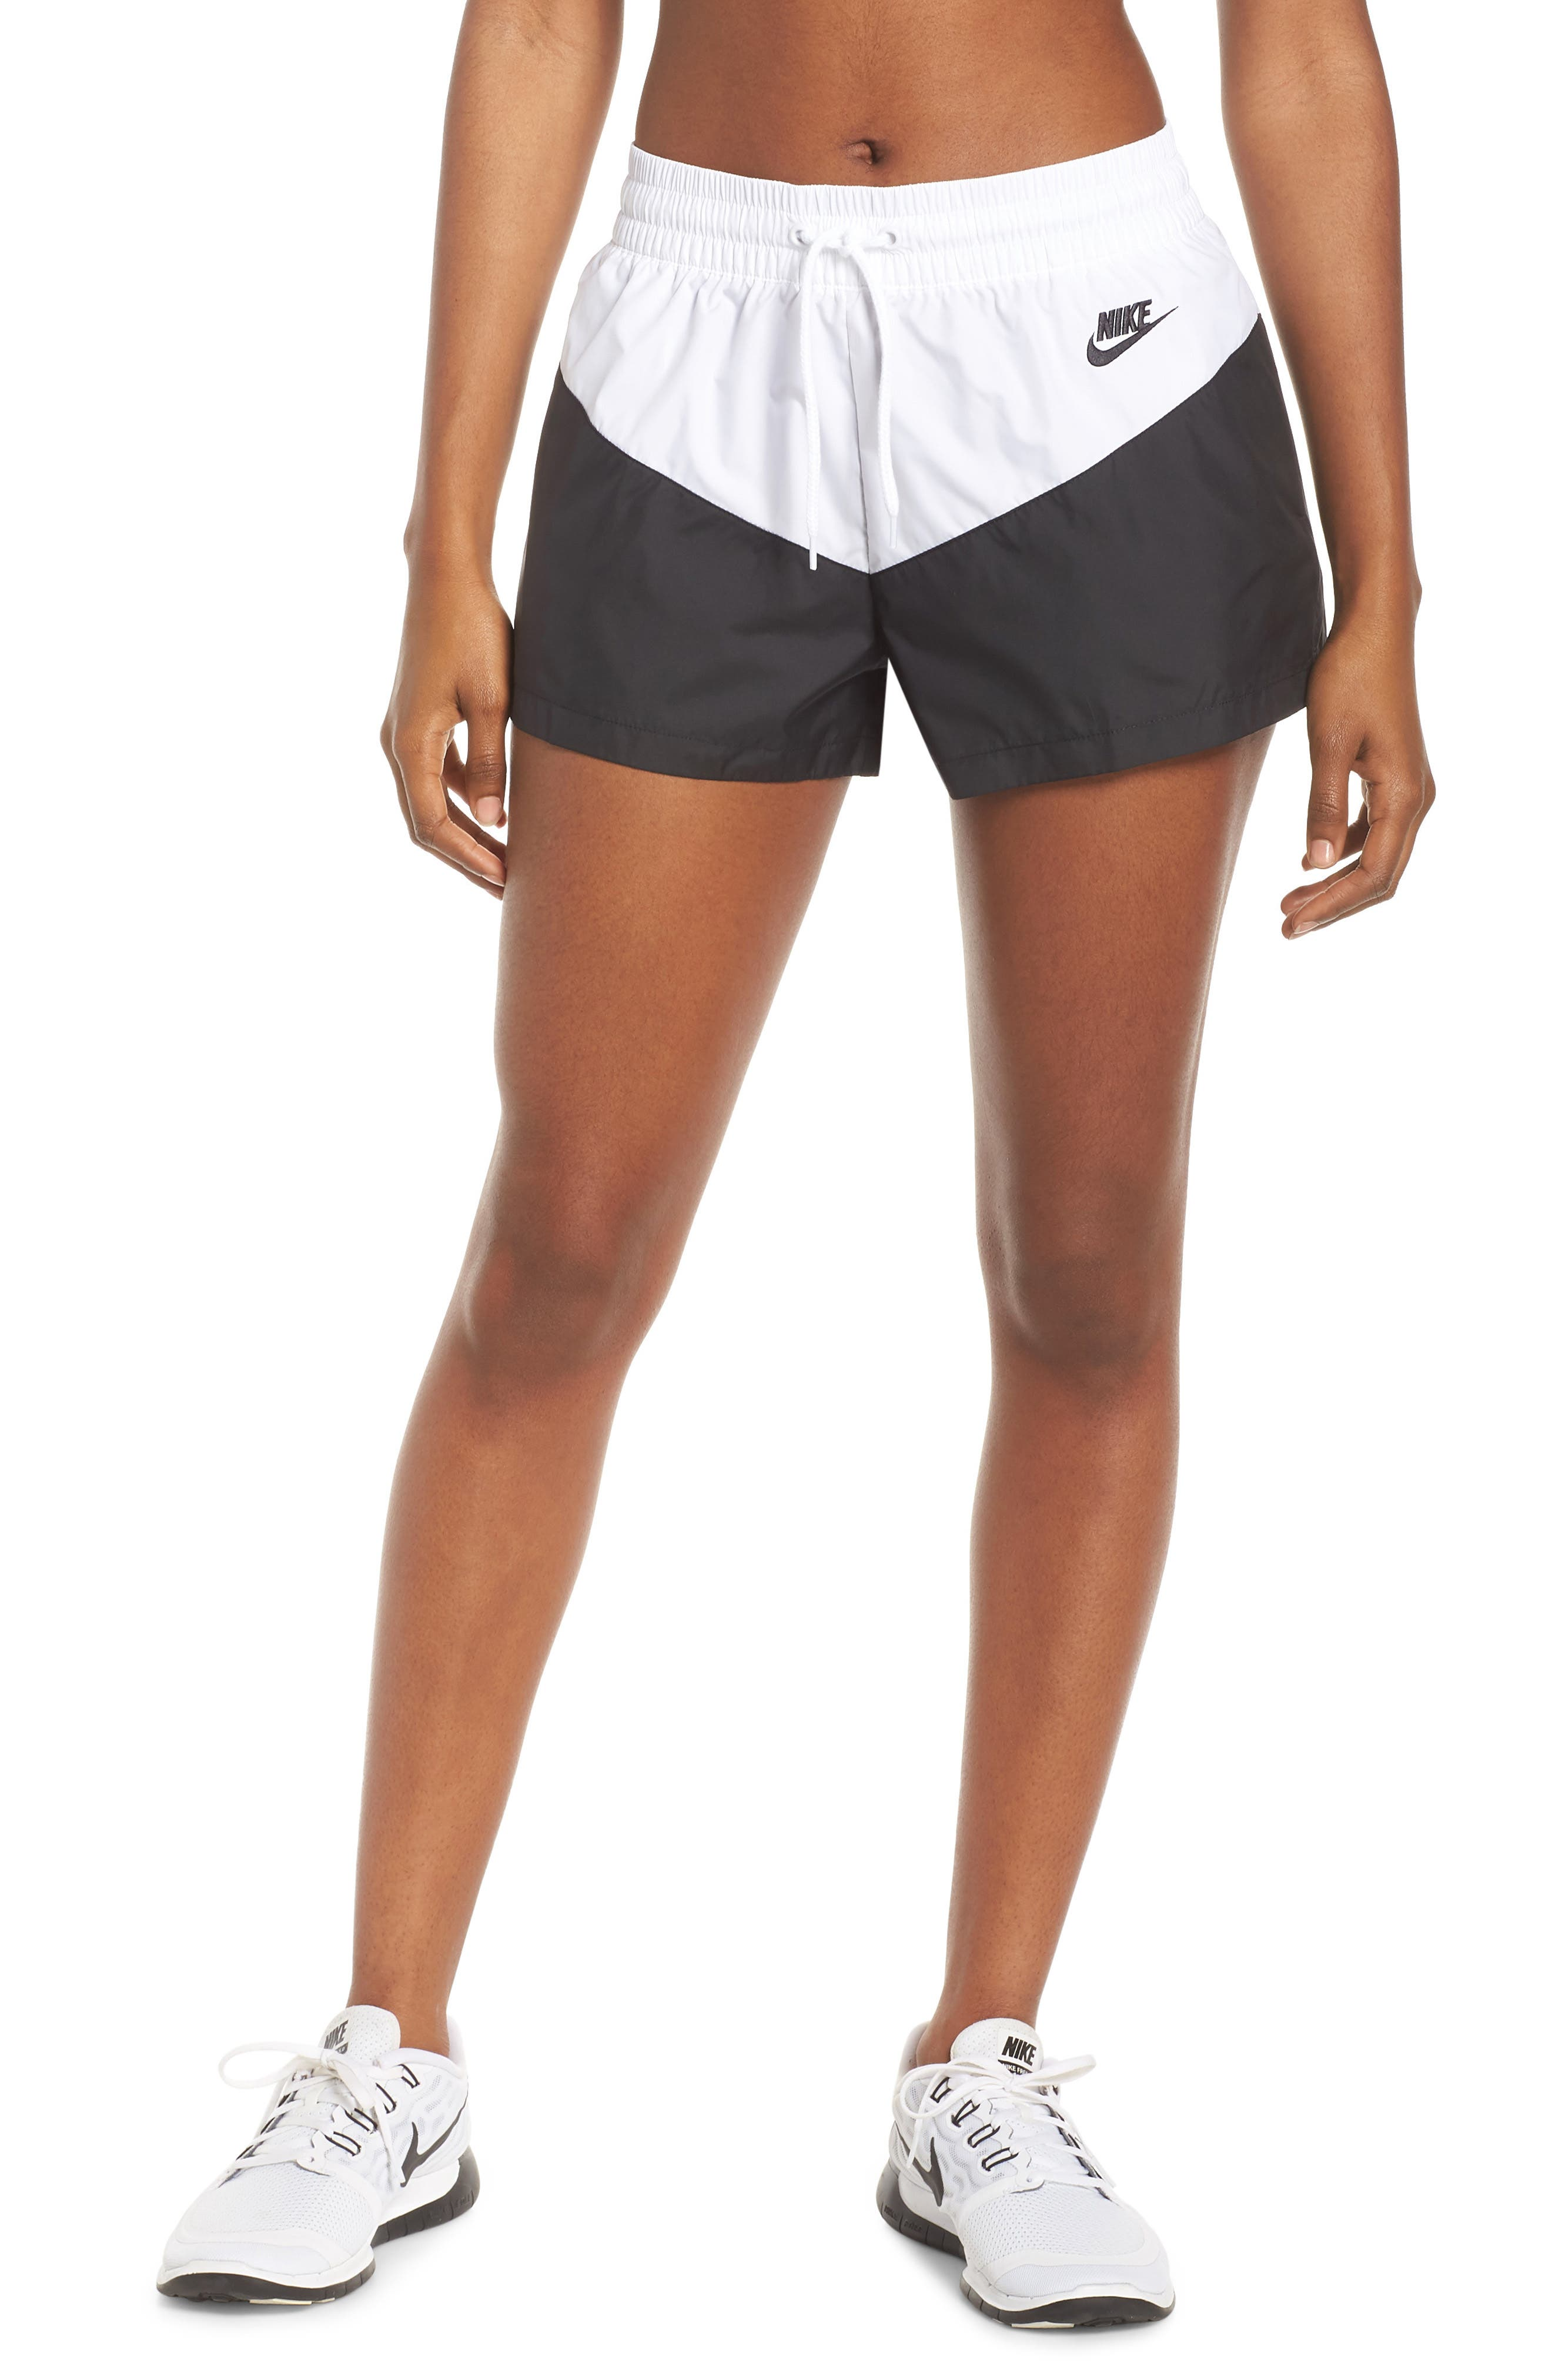 72f796c14ea5b4 Women's Running Active & Workout Shorts & Skirts | Nordstrom